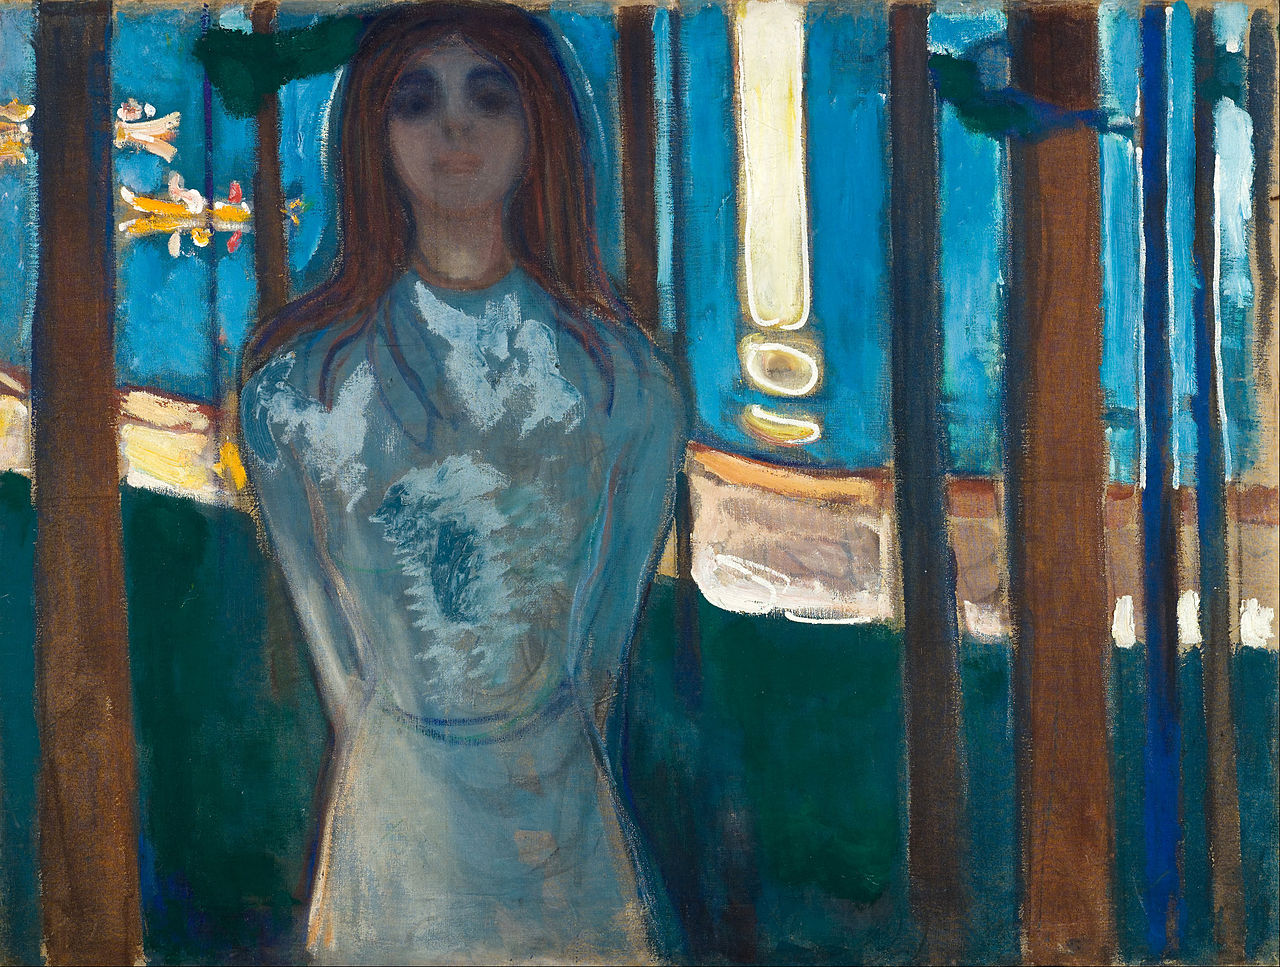 Edvard_Munch_-_The_Voice_,_Summer_Night_-_Google_Art_Project